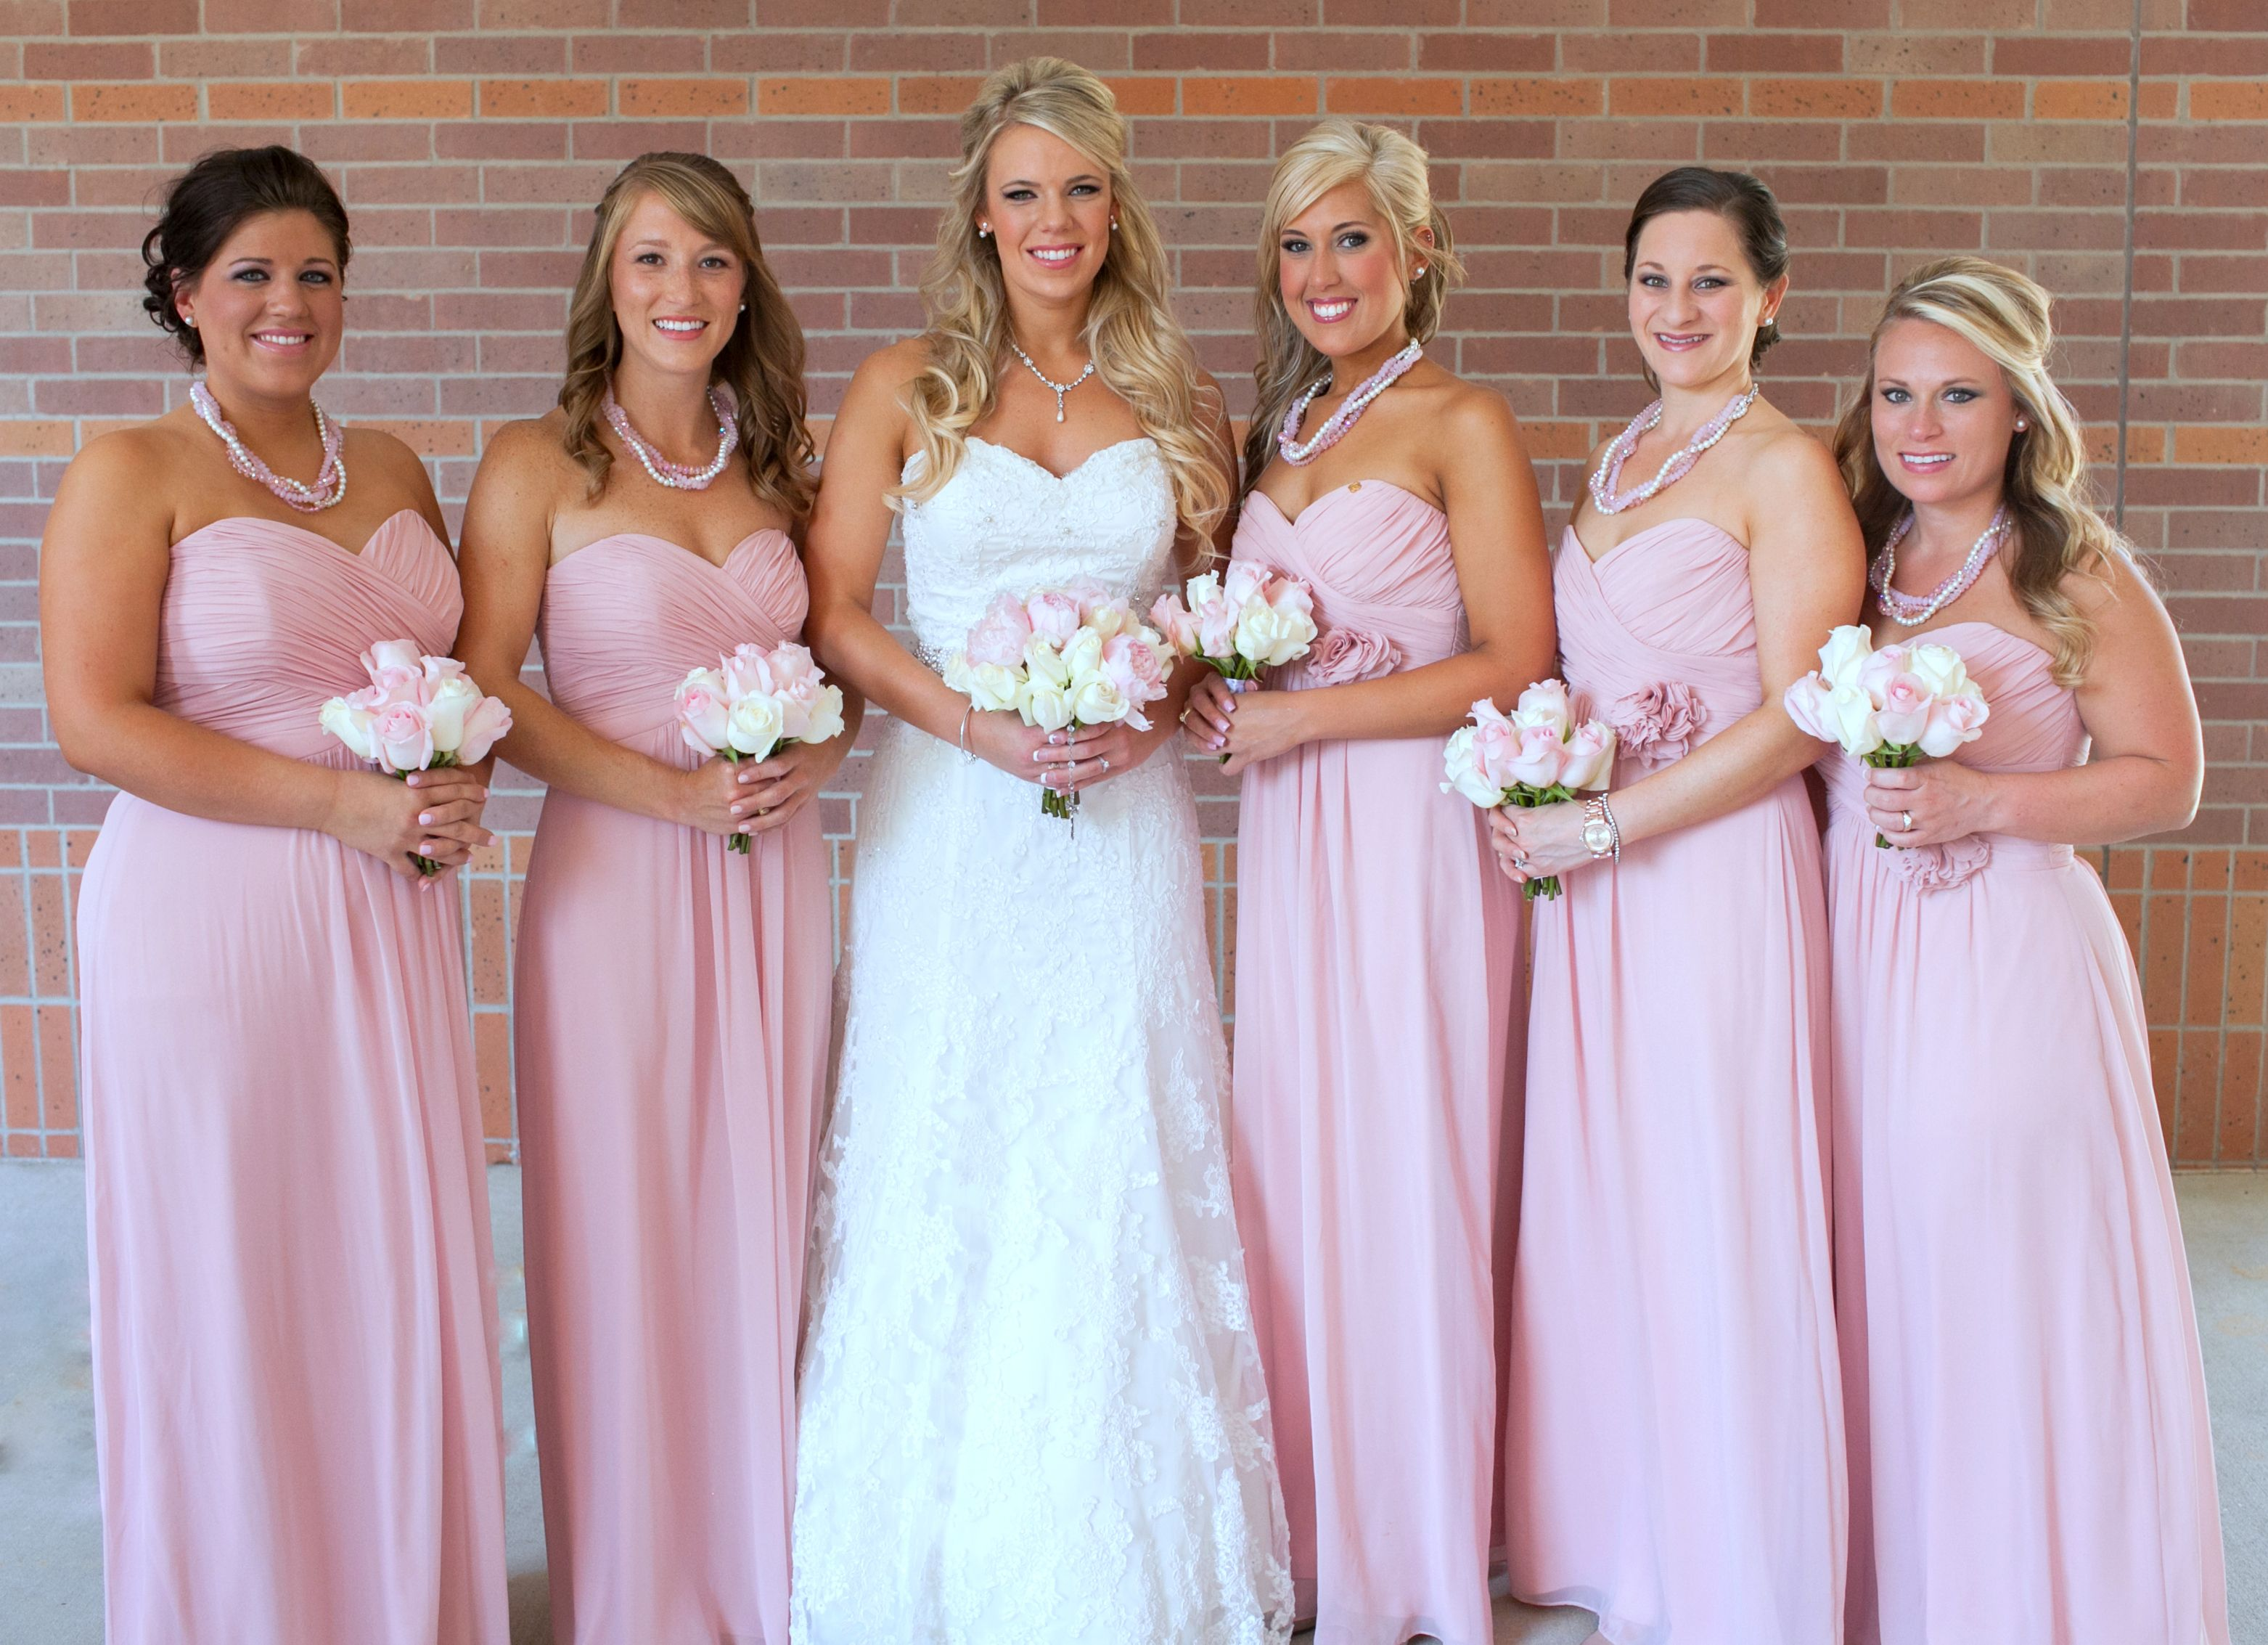 Softpalelight pink bridesmaid dresses my military wedding softpalelight pink bridesmaid dresses ombrellifo Gallery